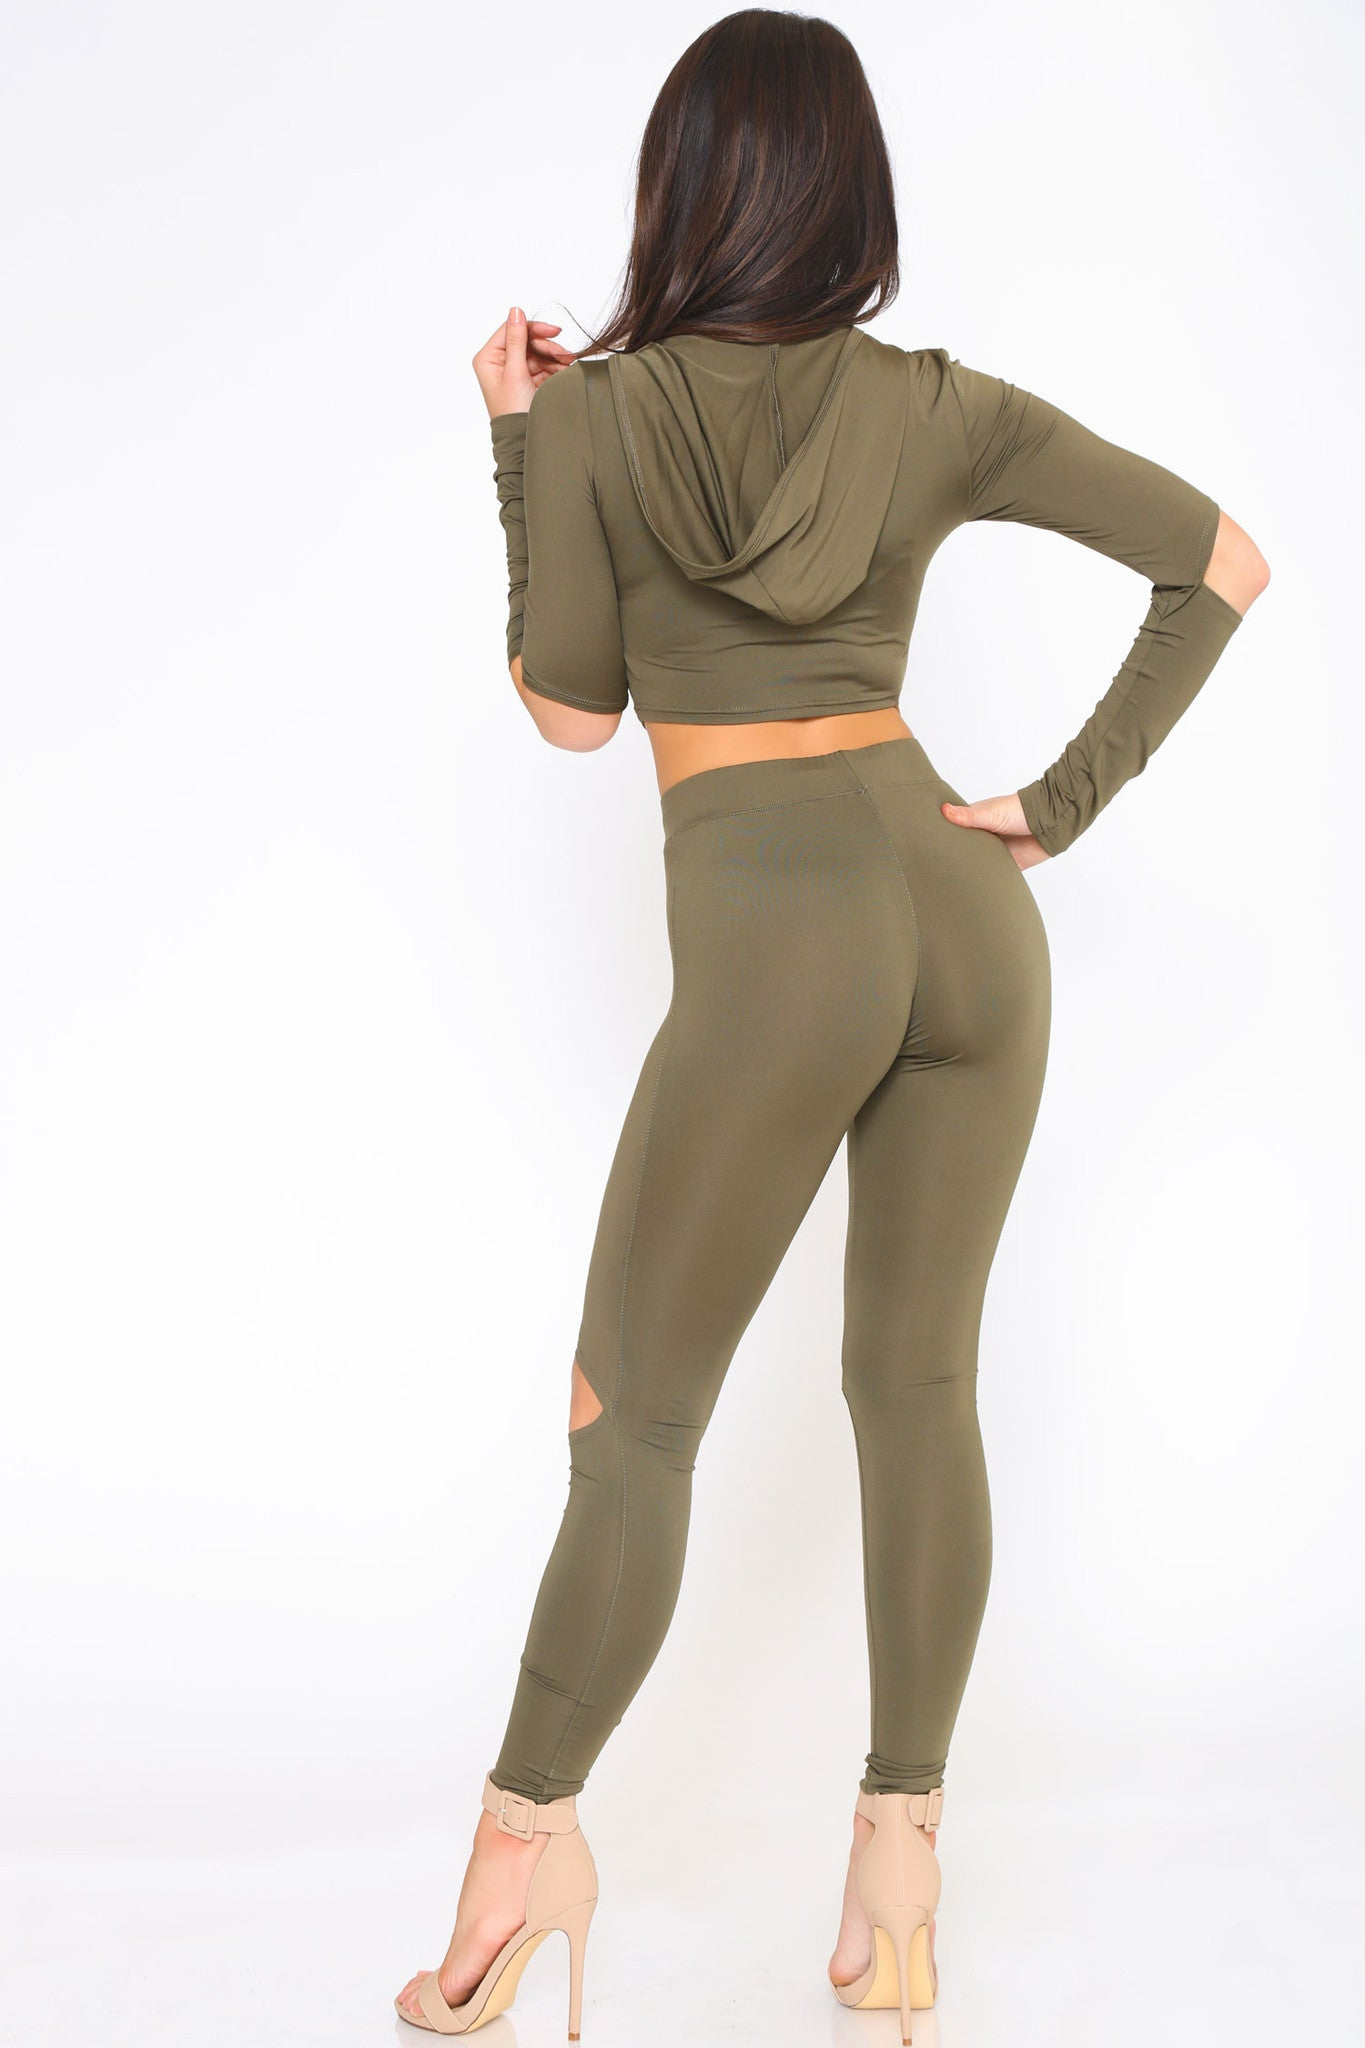 YONCE CROP TOP AND LEGGINGS SET - Glam Envy - 5